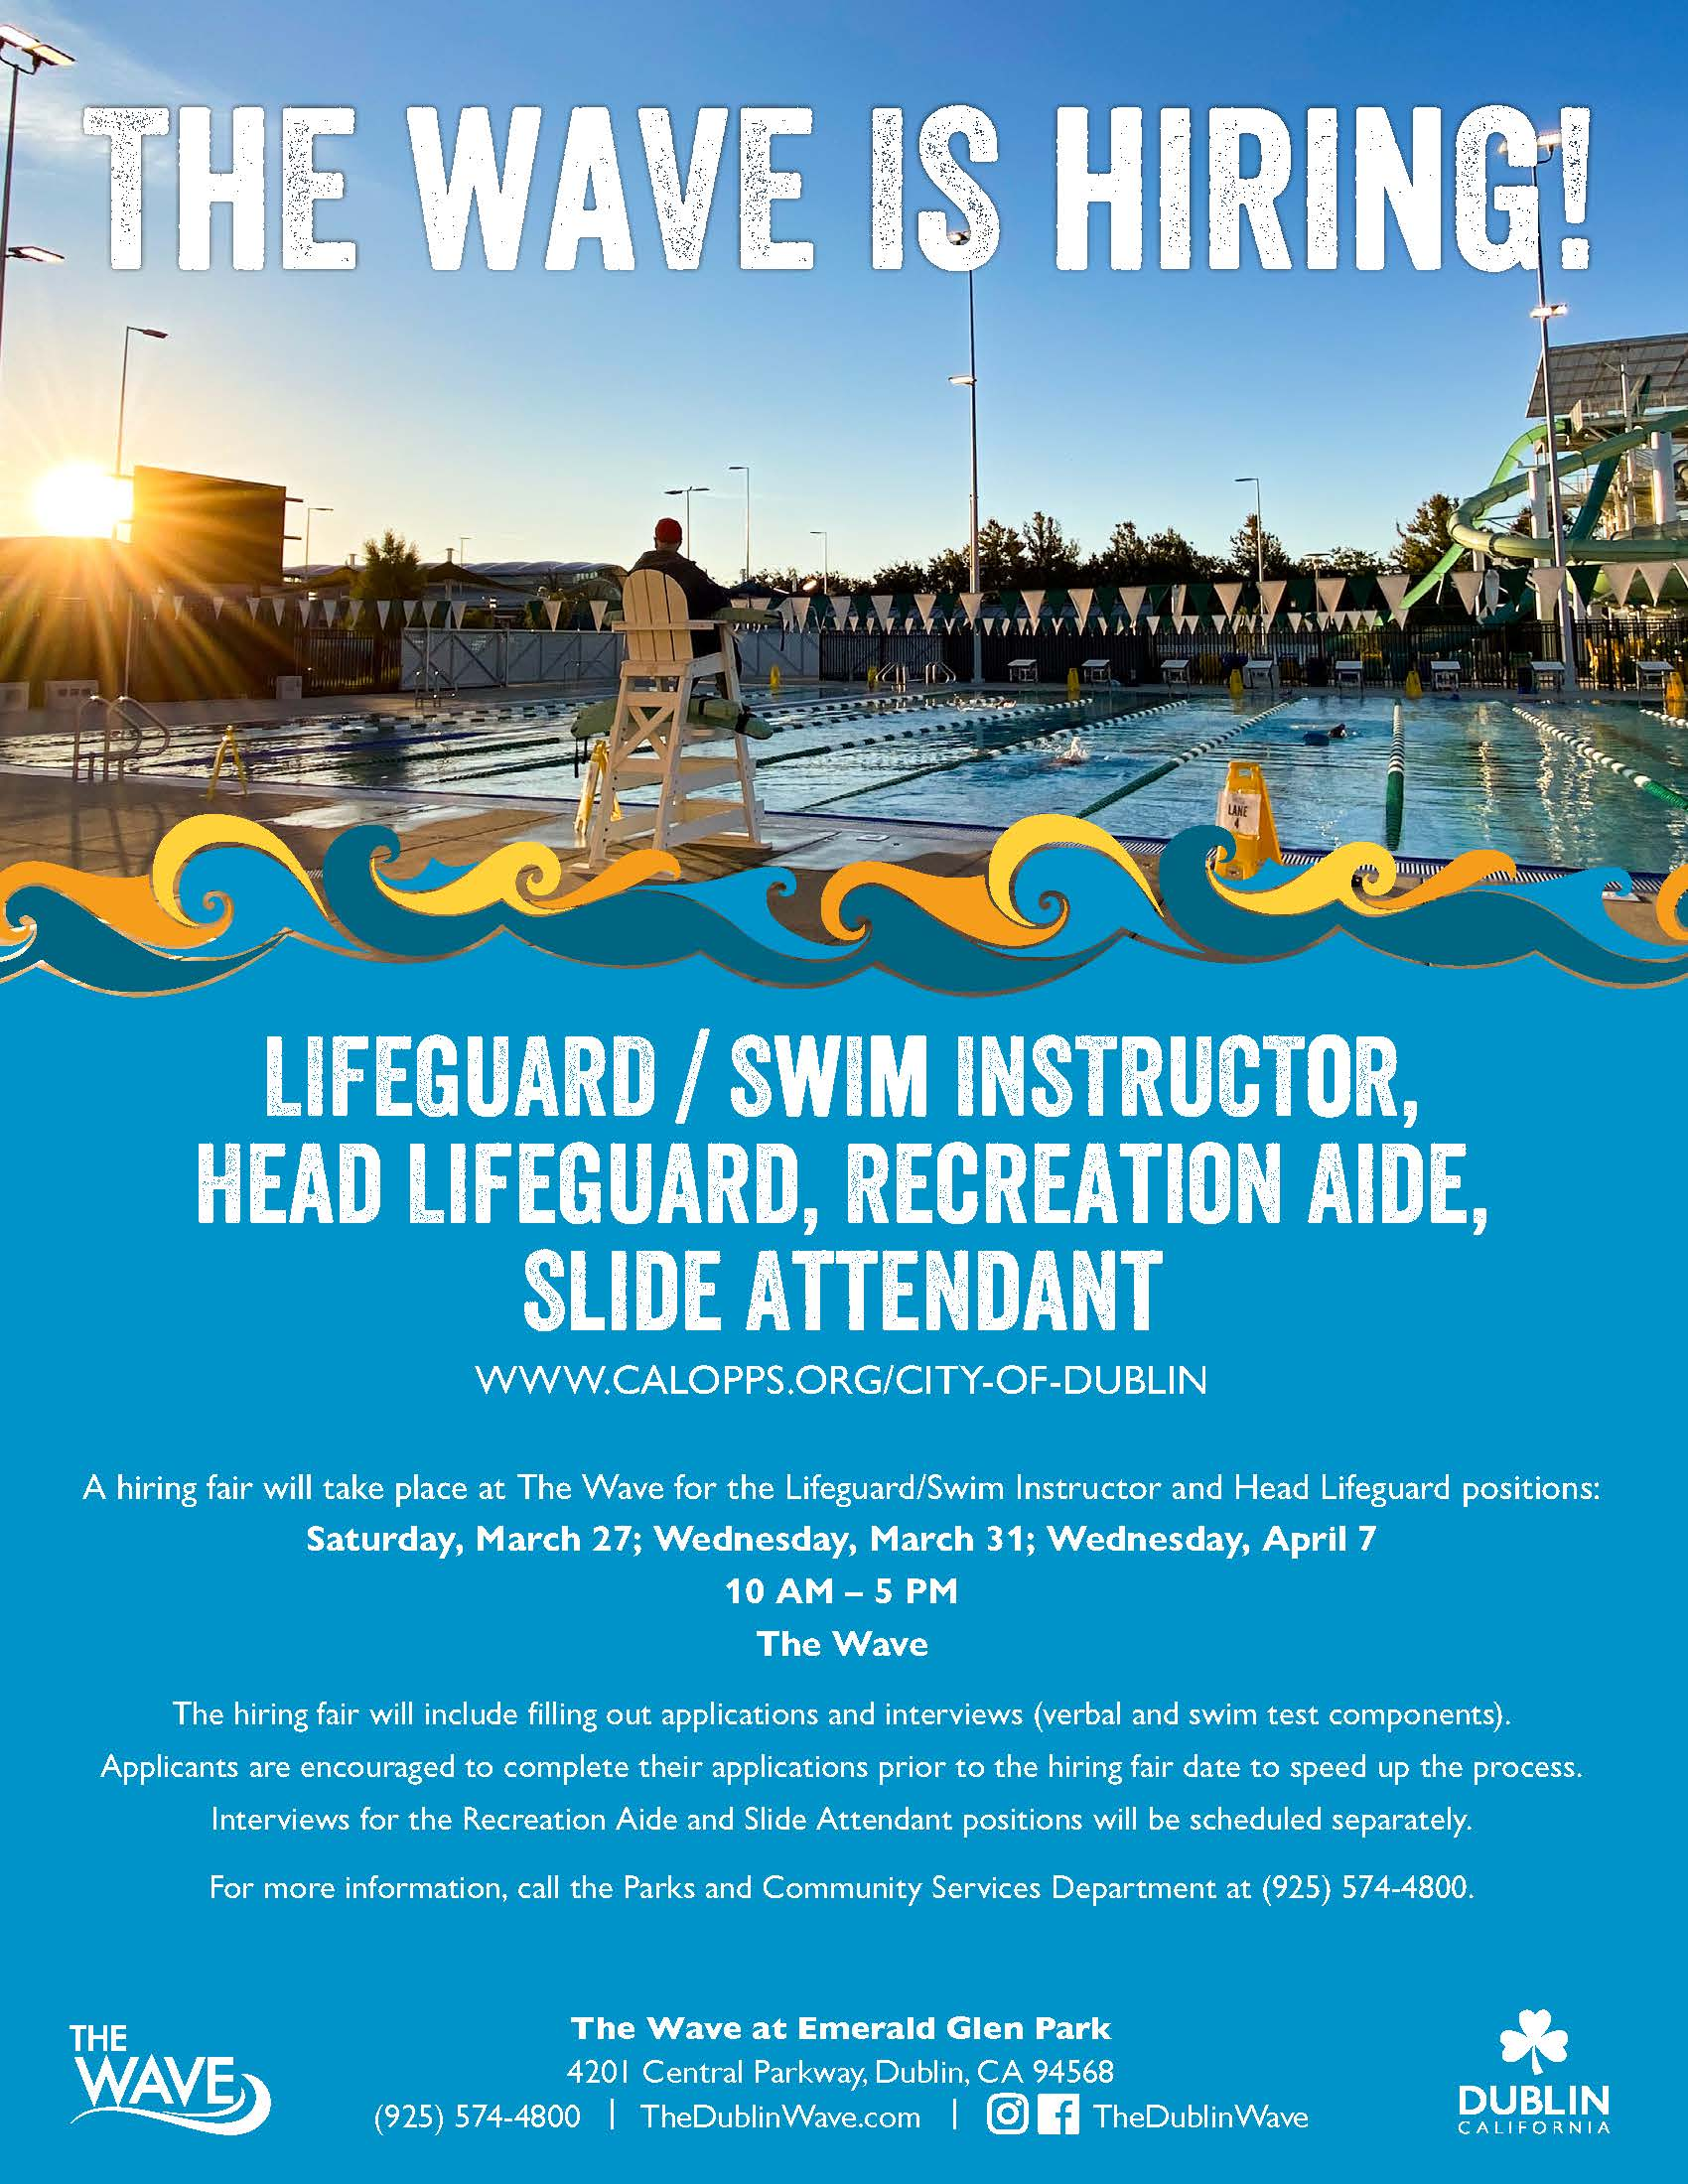 Lifeguard watching the pool, advertising The Wave Hiring Fair on March 27, 31, and April 7.